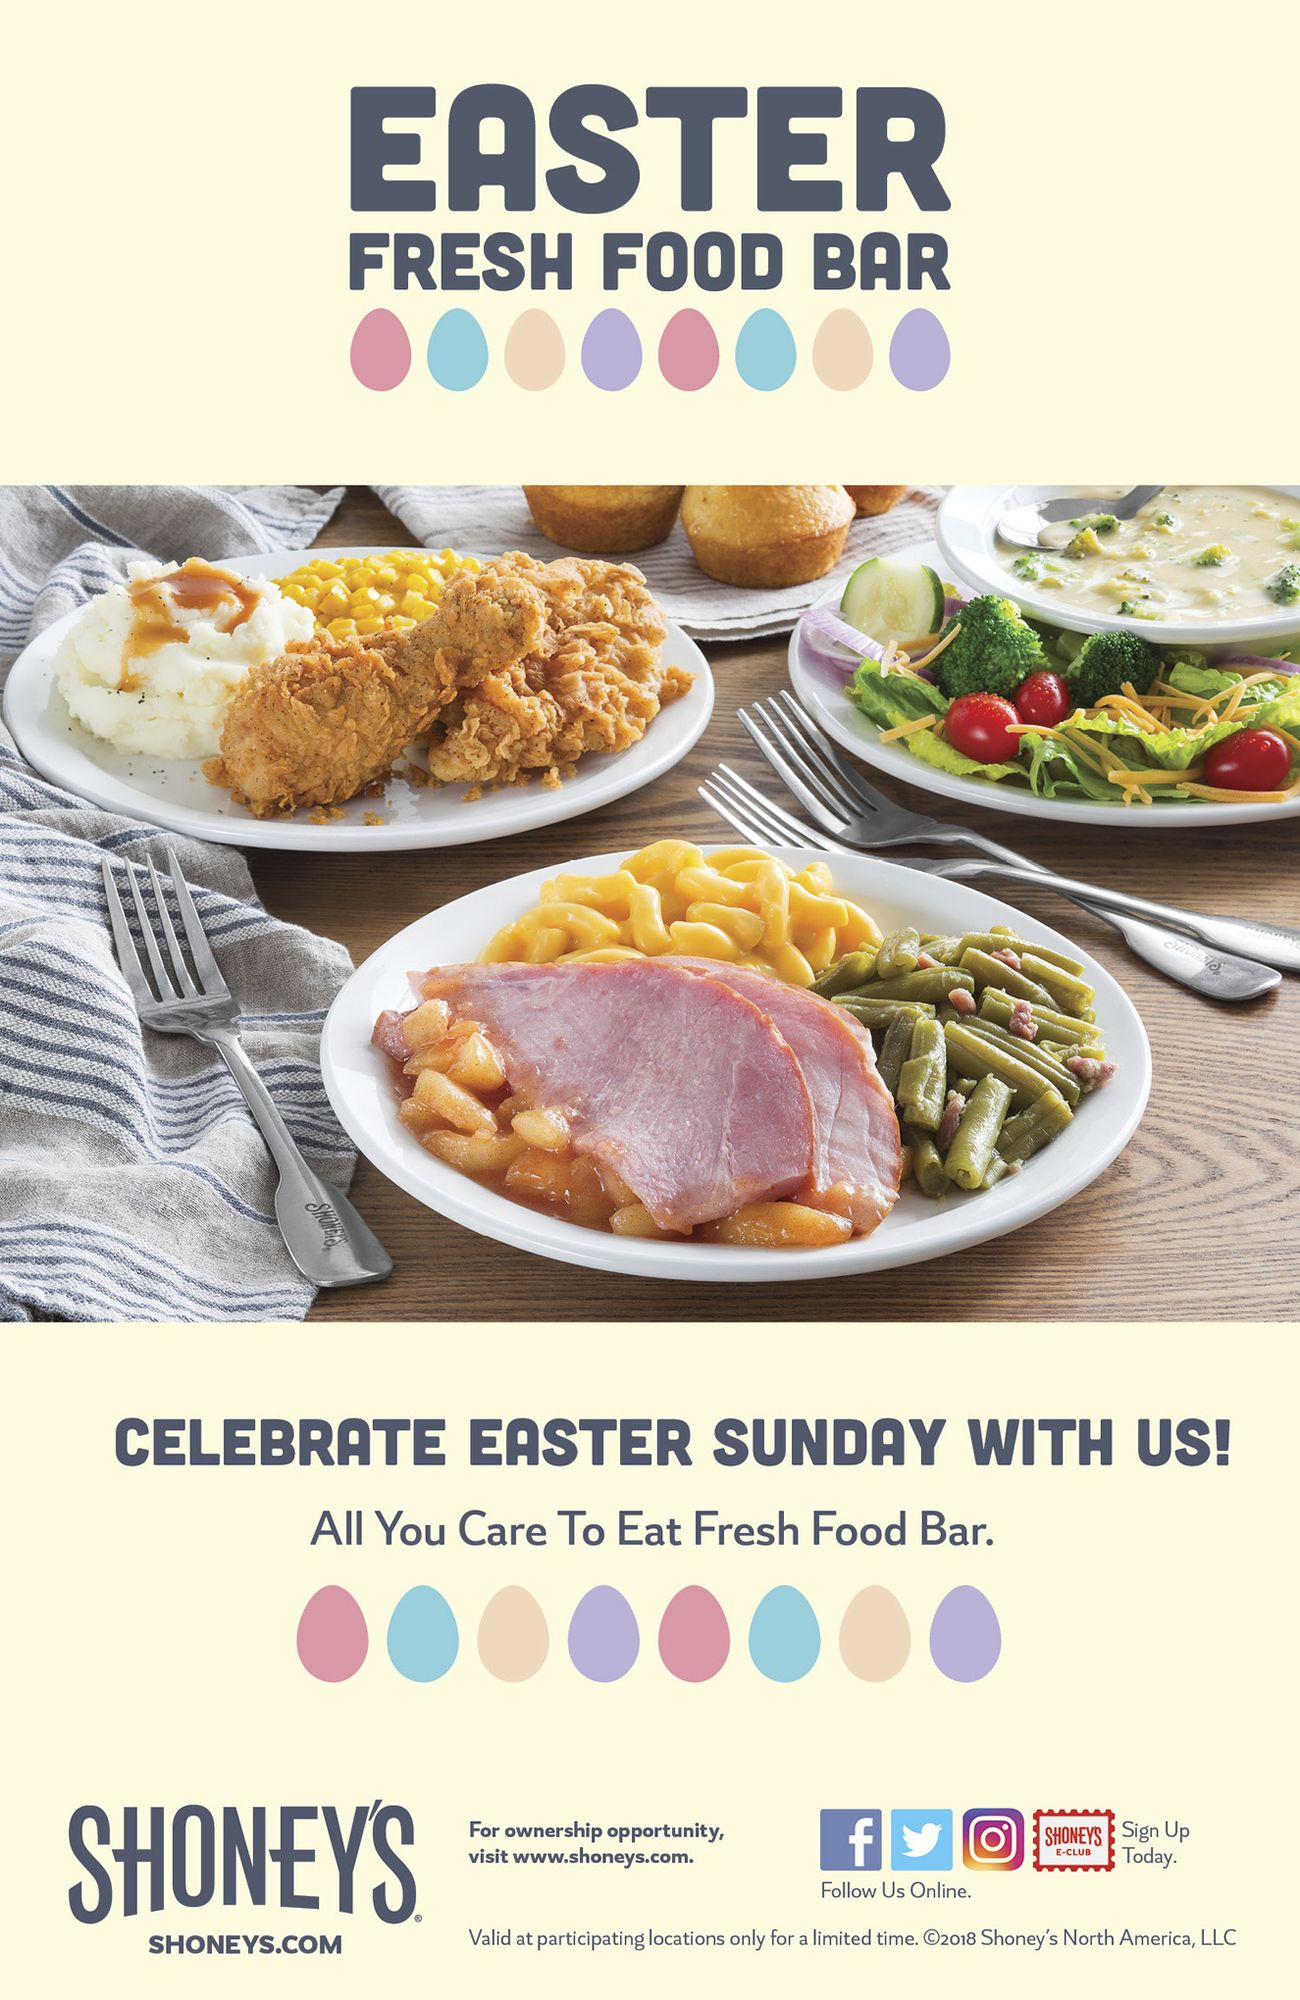 Shoney's Invites America to Enjoy its Home-Style Easter All You Care To Eat Fresh Food Bar Featuring Freshly-Prepared Holiday Favorites